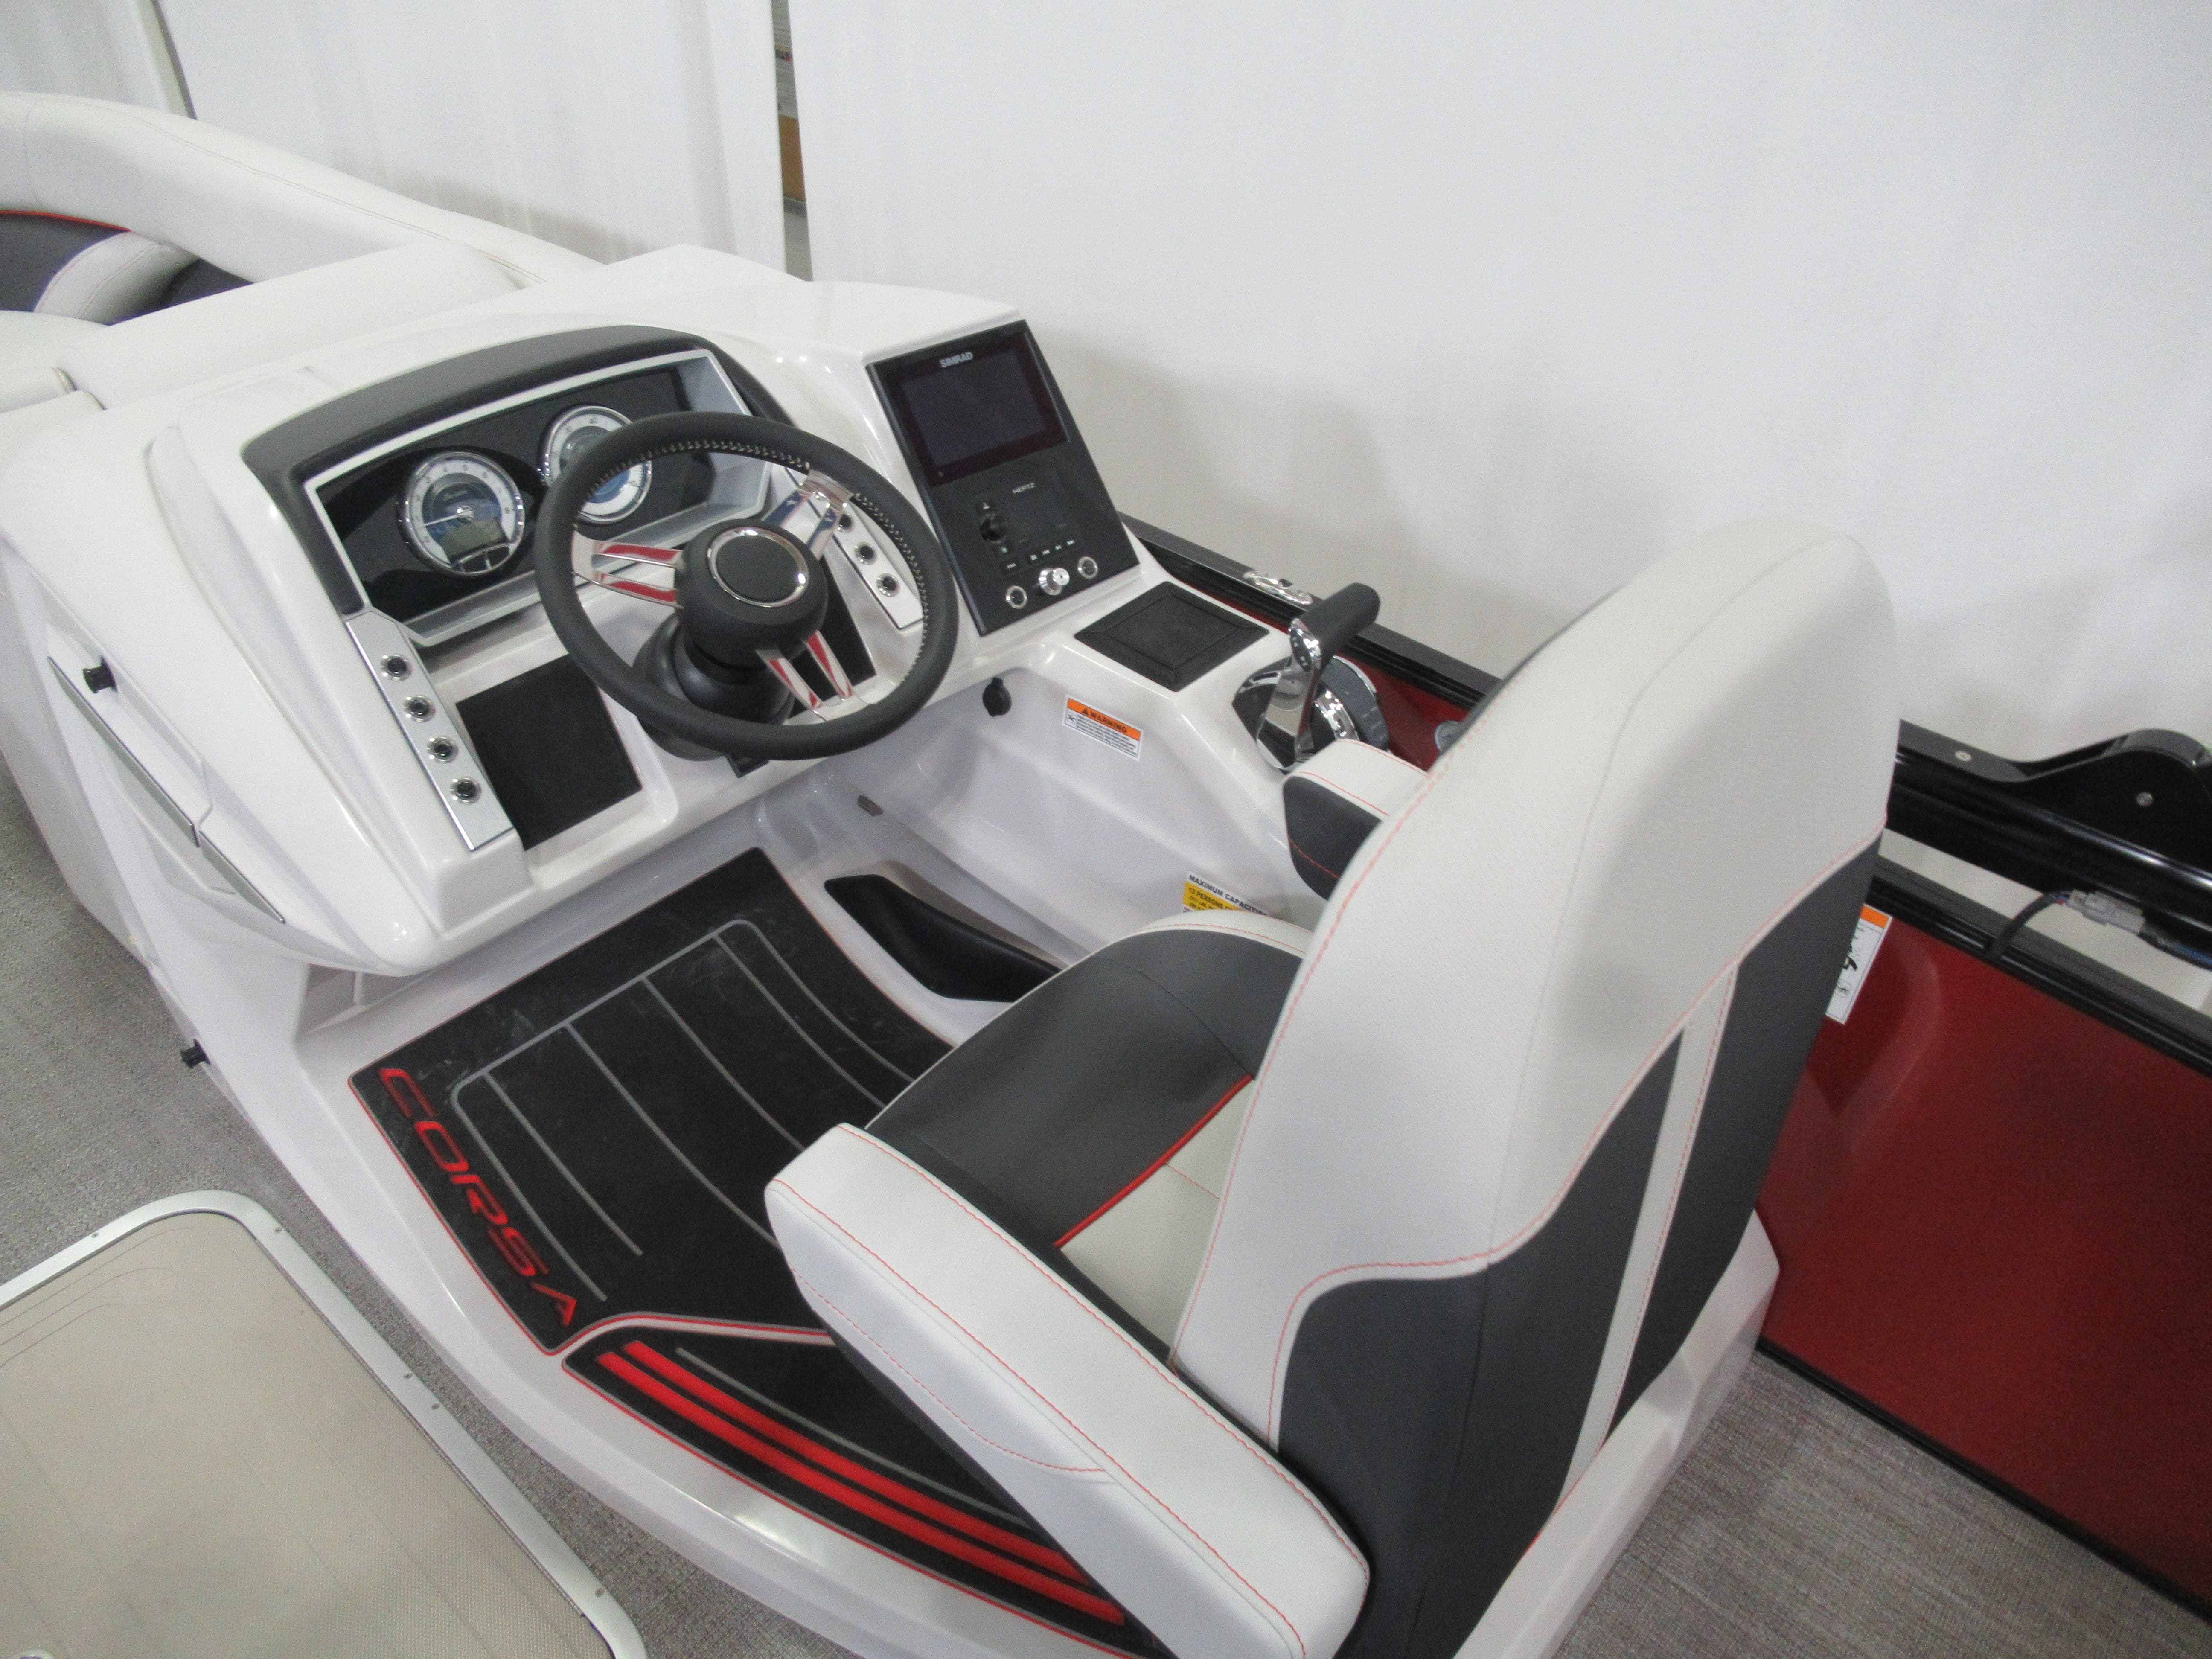 2021 Barletta boat for sale, model of the boat is CORSA 23UC & Image # 8 of 11